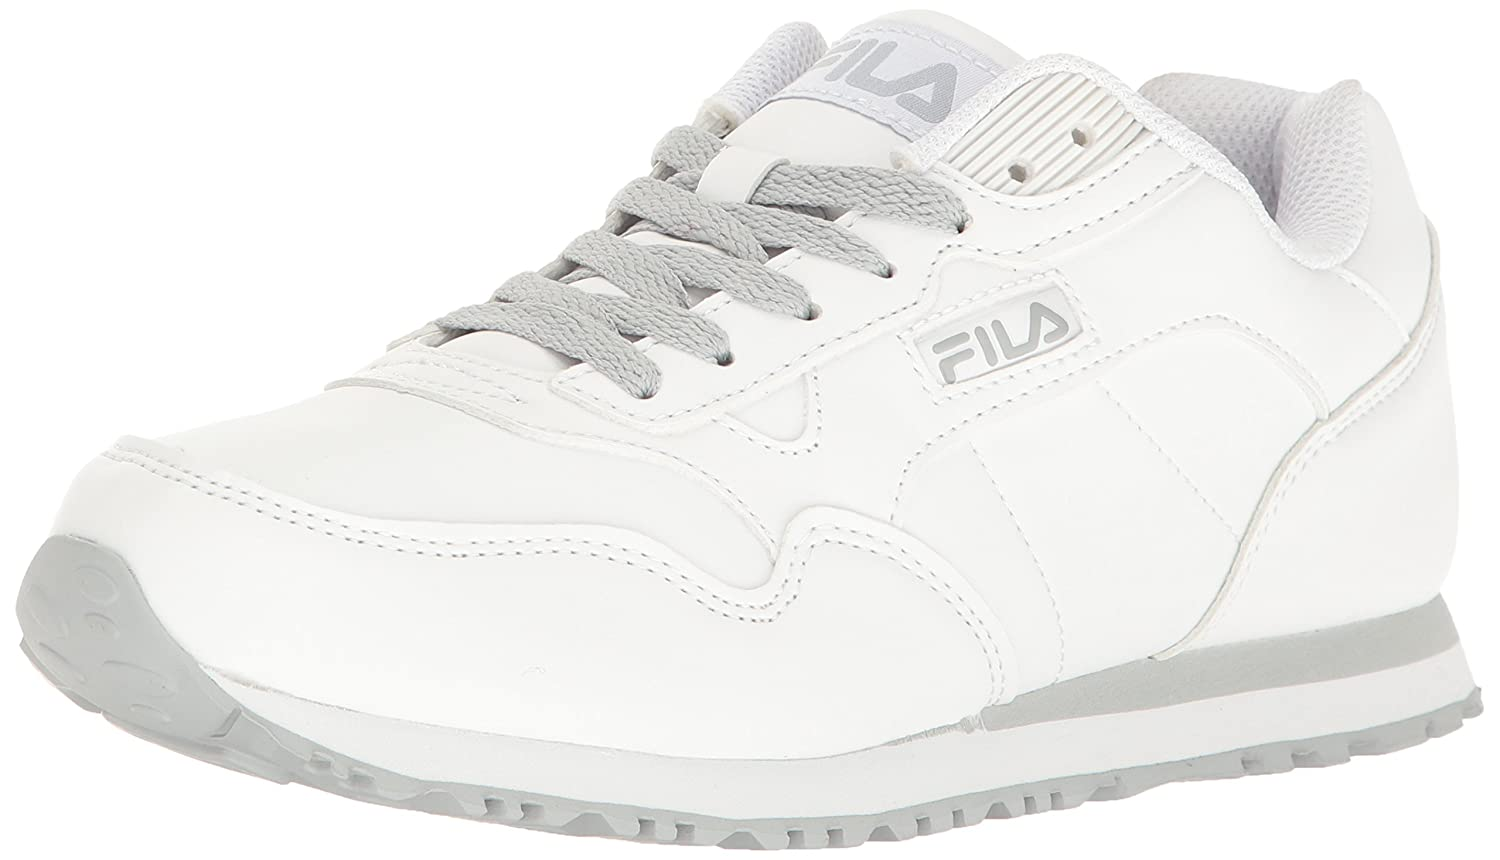 Fila Women's Cress Walking Shoe B06WWGGWC7 6 B(M) US|White/Highrise